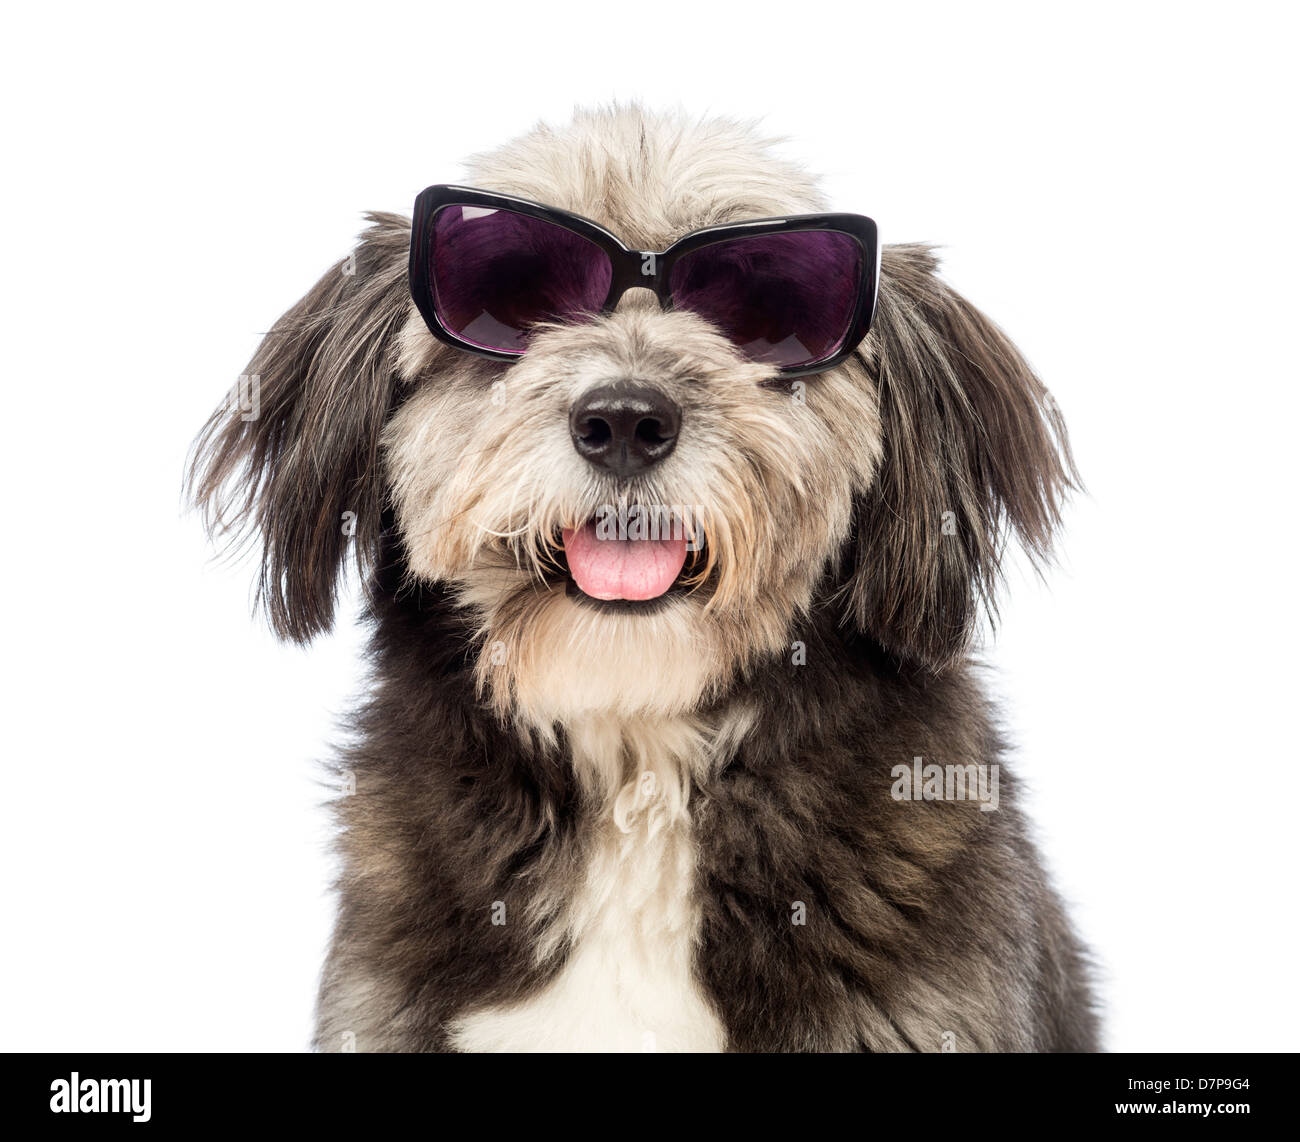 Close-up of a Crossbreed dog, 4 years old, wearing sunglasses against white background - Stock Image